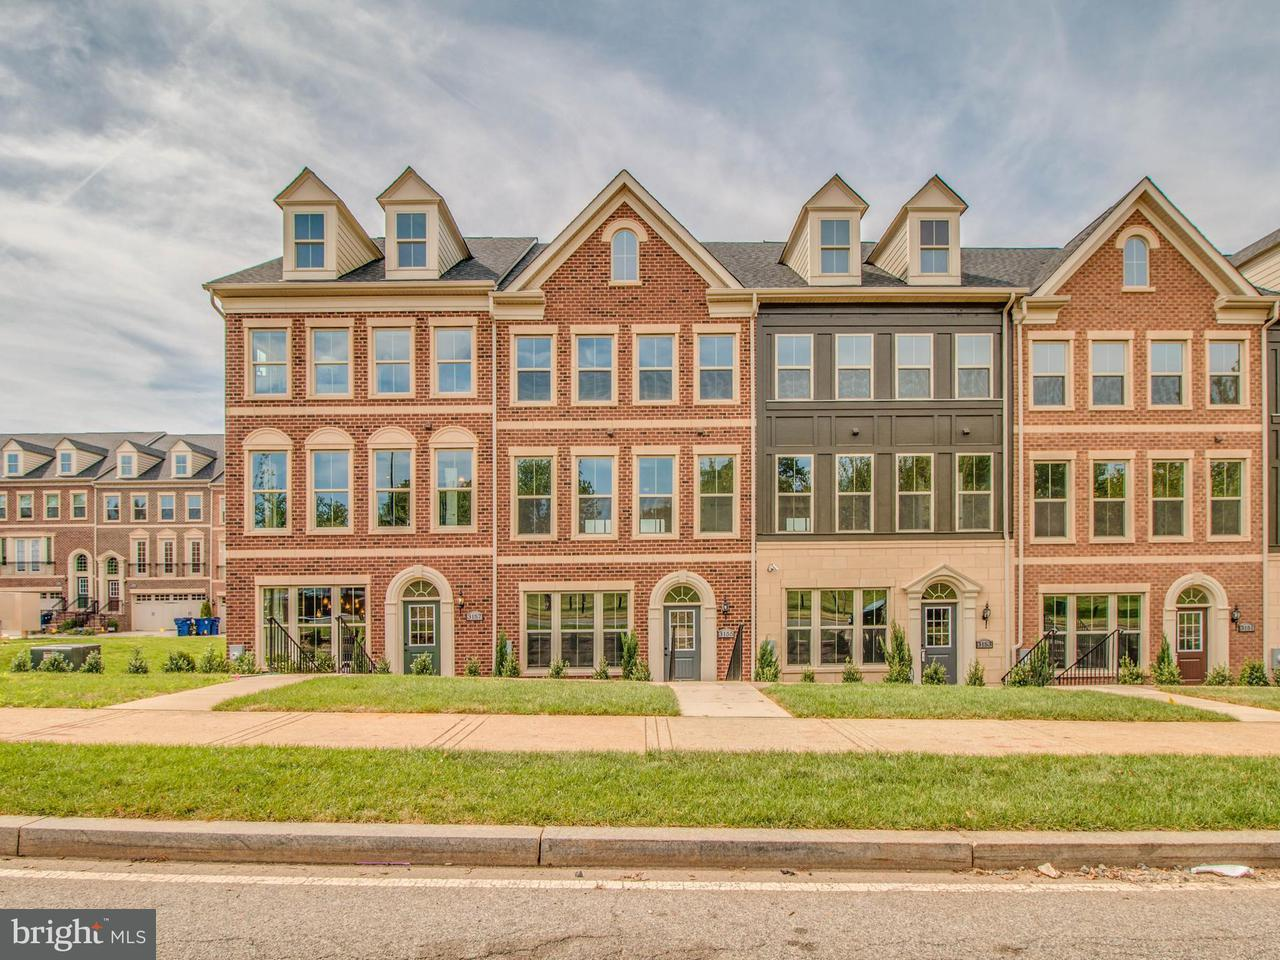 Townhouse for Sale at 3632 Commodore Joshua Barney Dr Ne 3632 Commodore Joshua Barney Dr Ne Washington, District Of Columbia 20018 United States